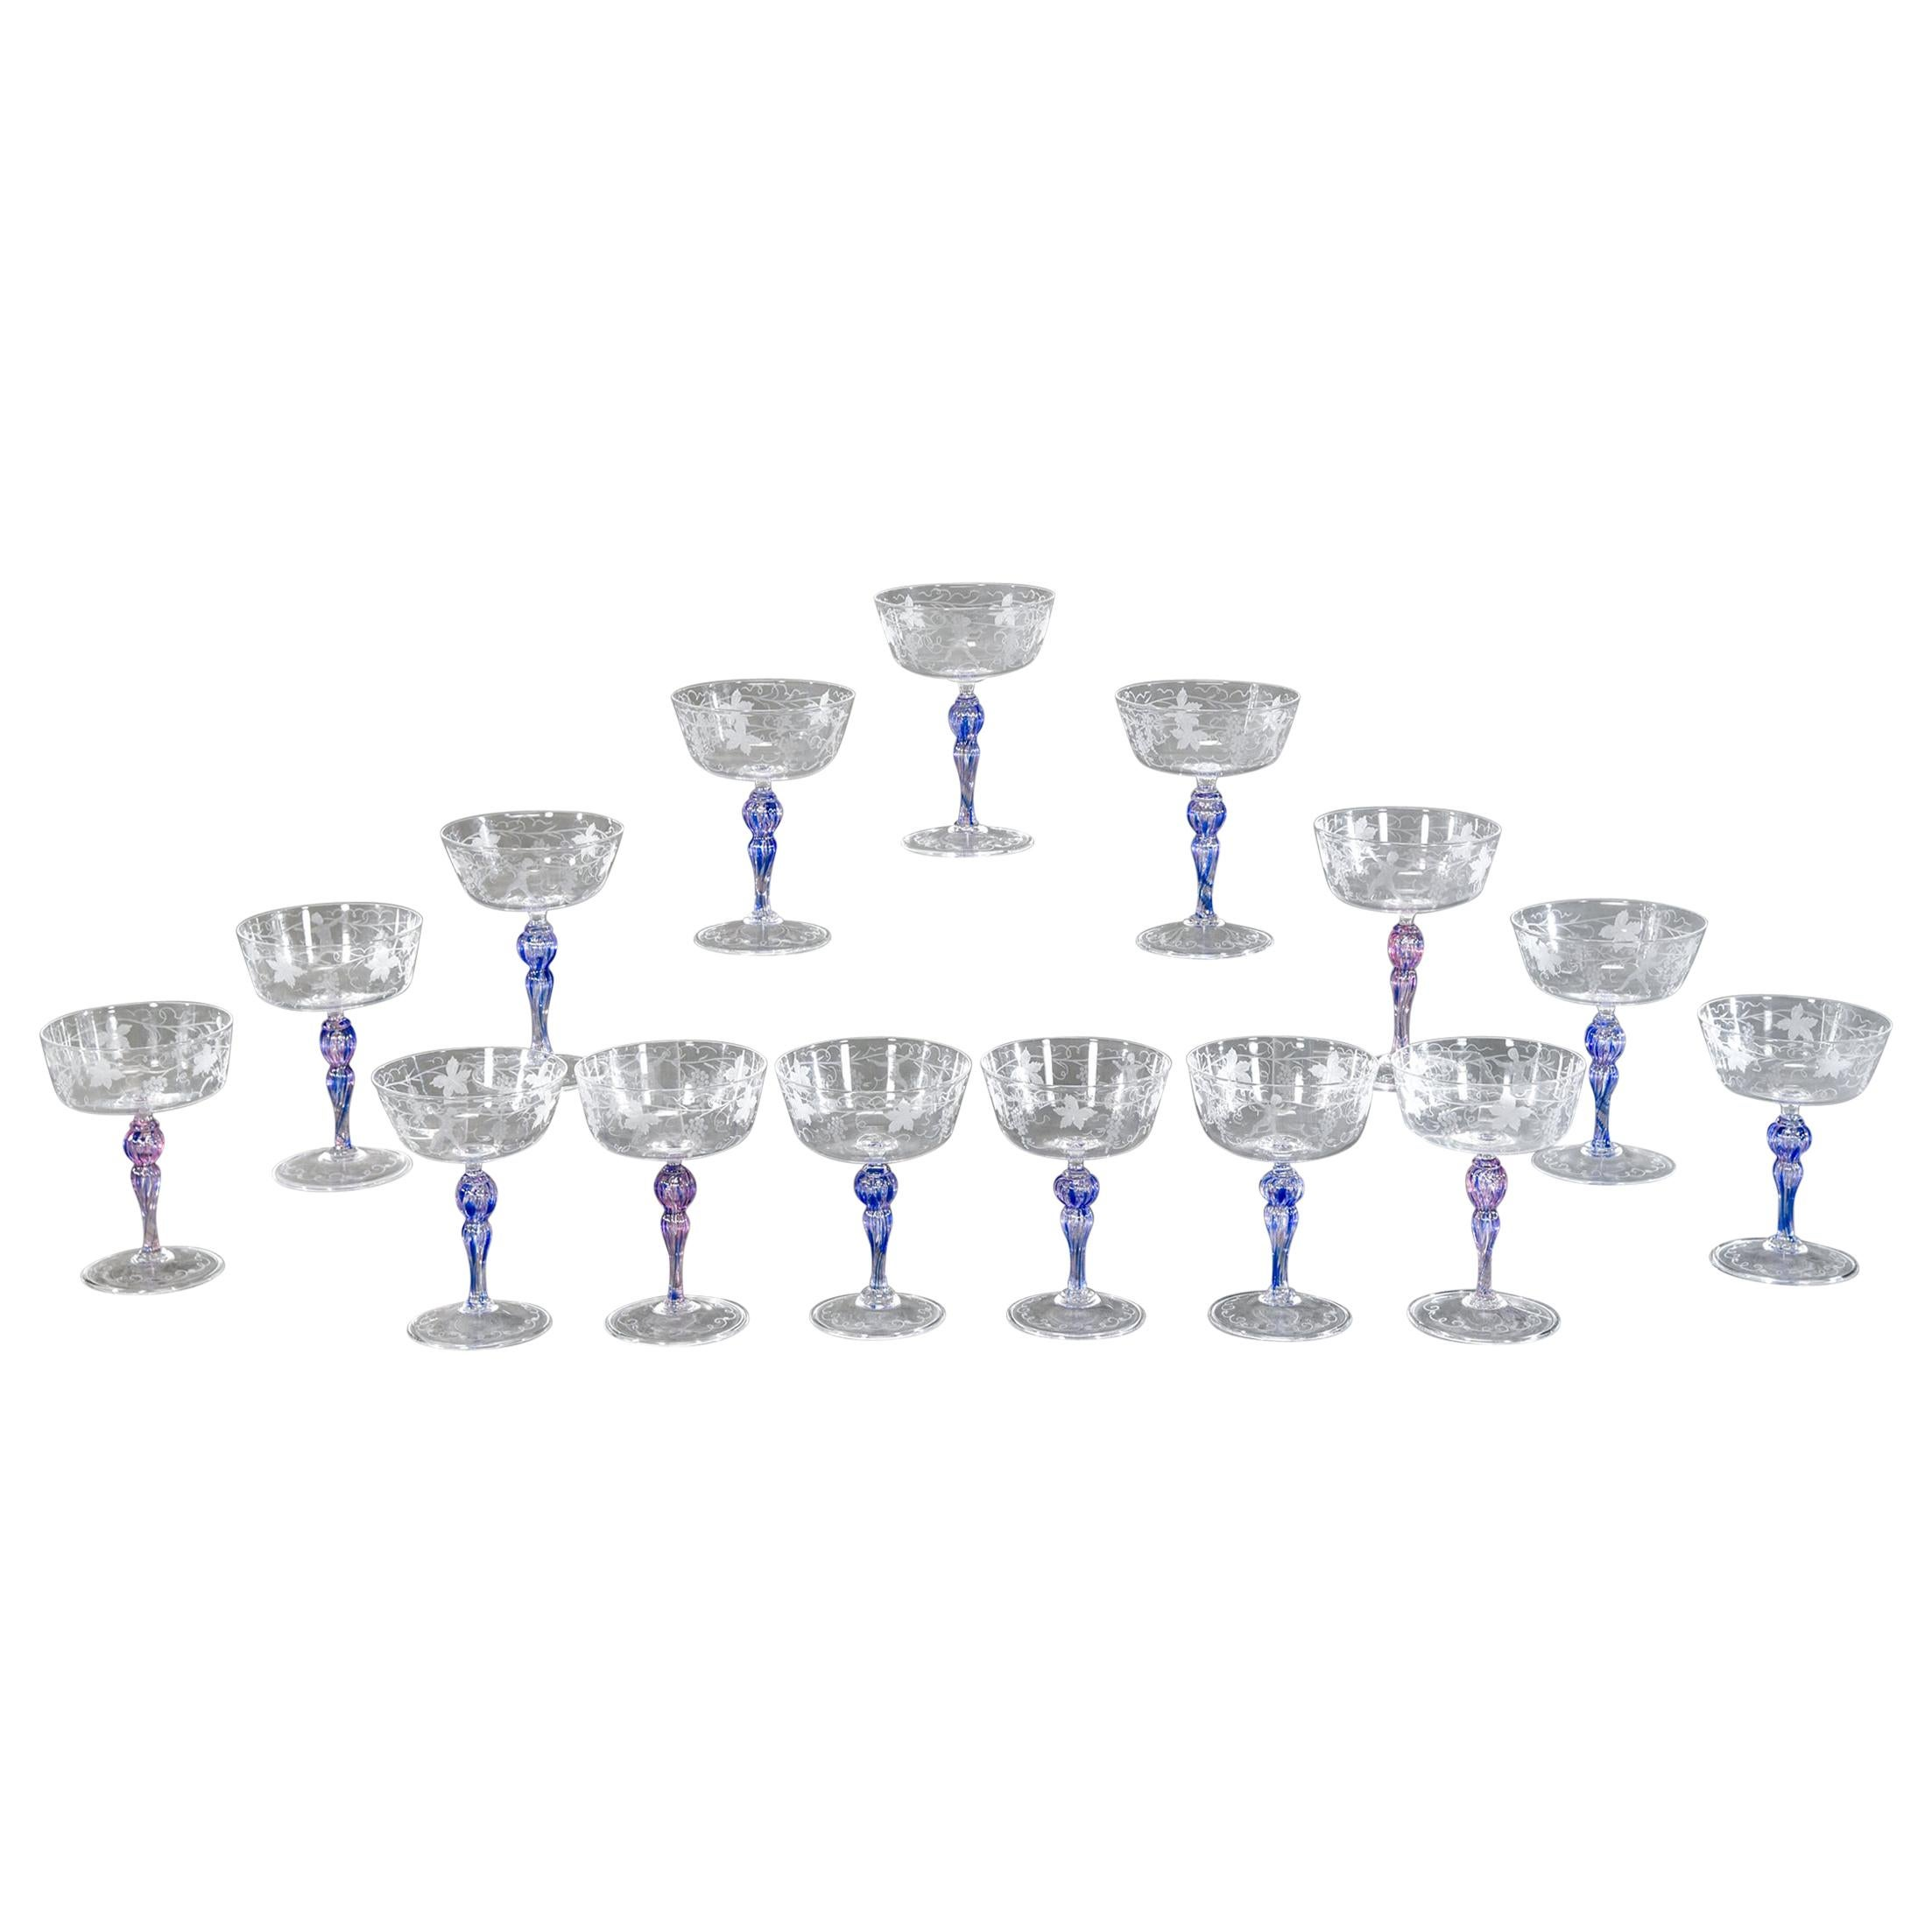 15 Venetian Bacchus and Grape Vine Engraved Champagne Coupes with Purple Stems